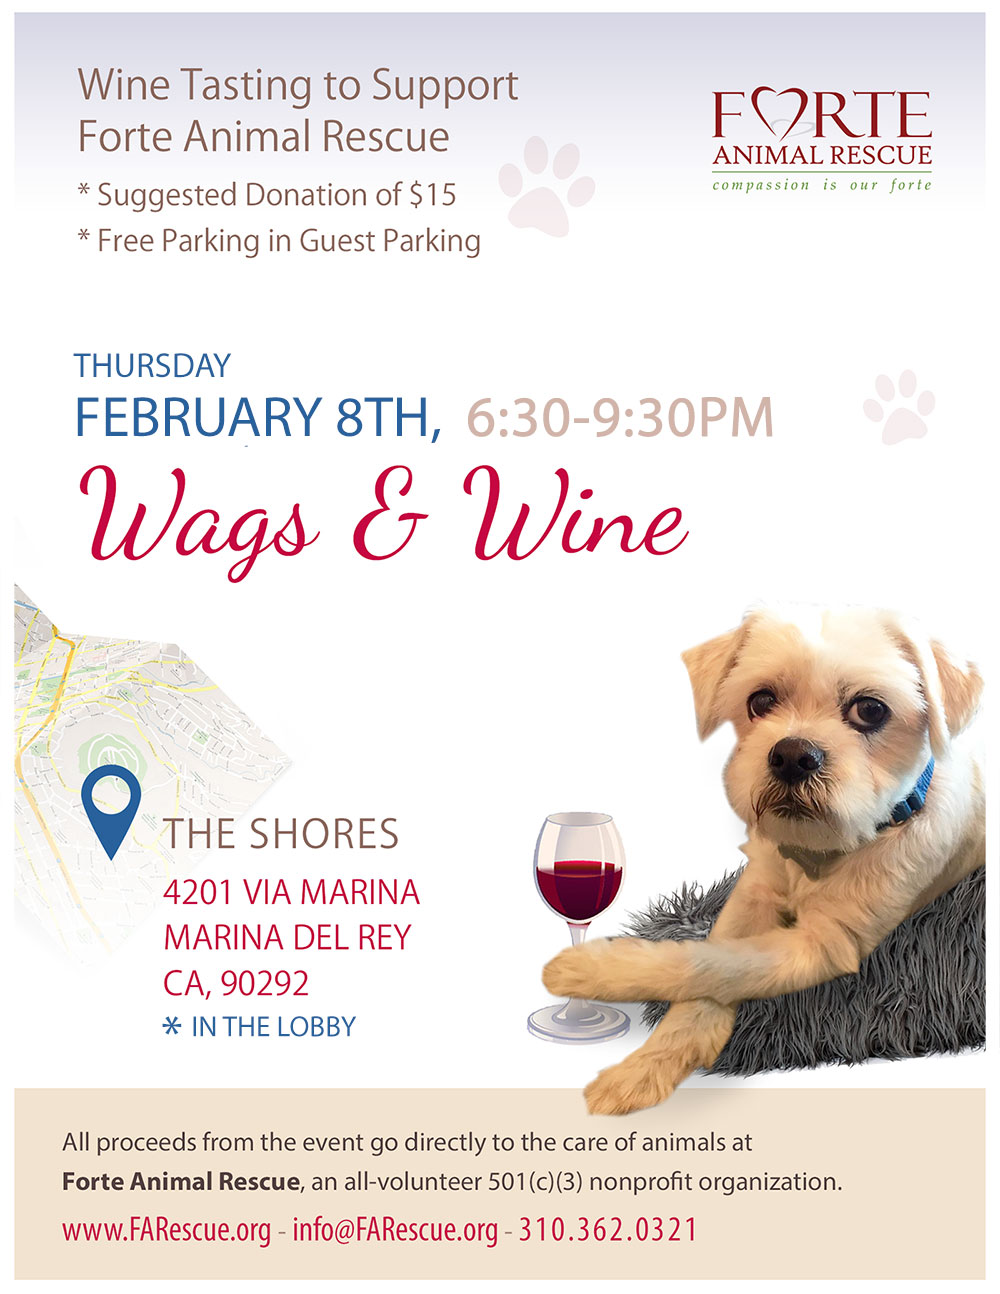 Wags & Wine Tasting to Support Forte Animal Rescue